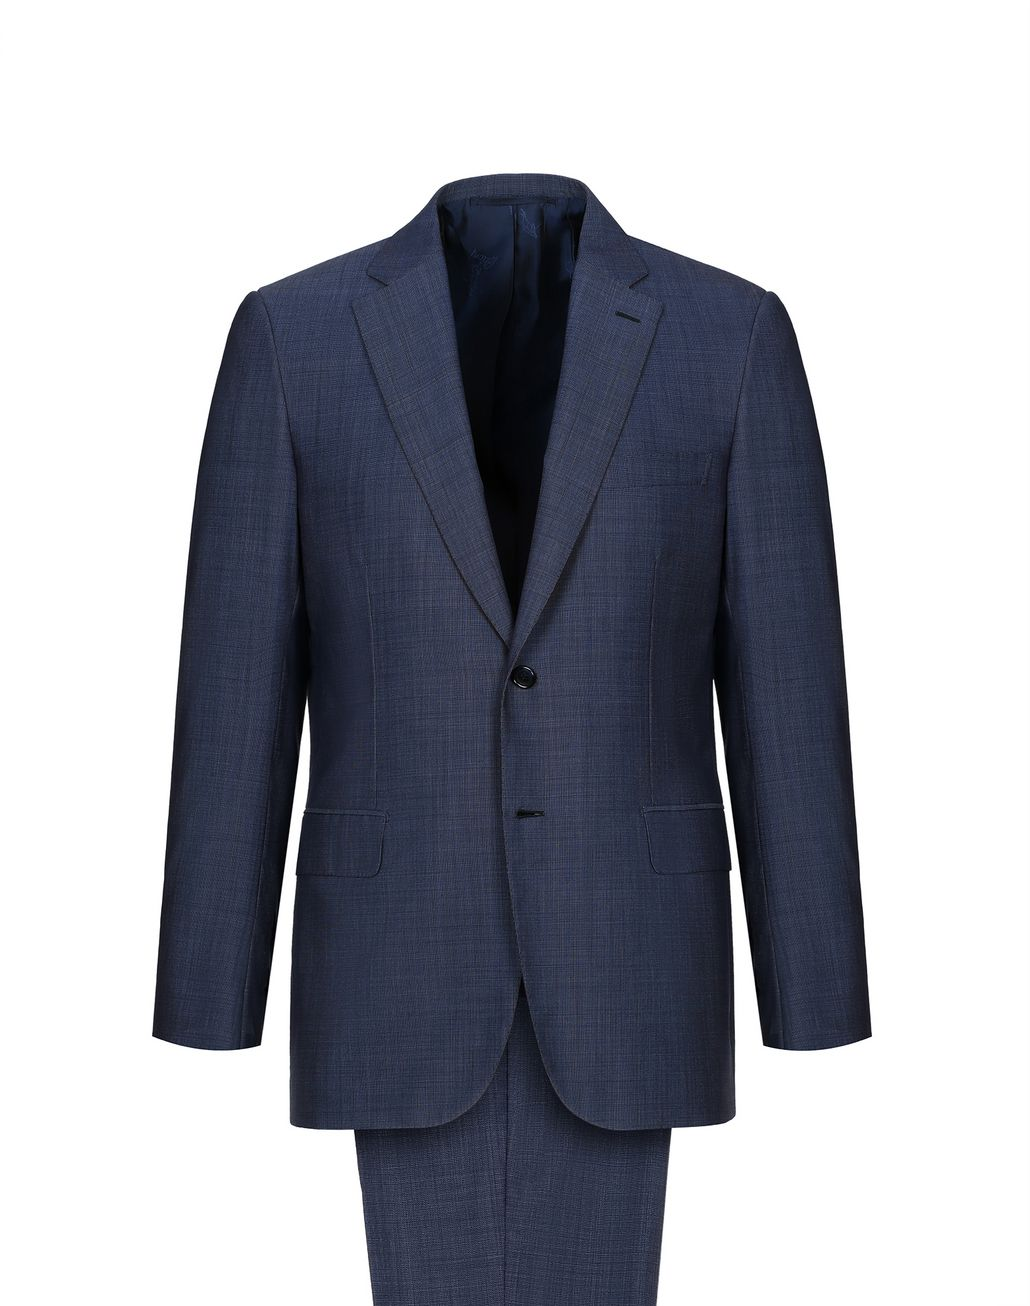 BRIONI Navy Blue Micro Grisaille Brunico Suit Suits & Jackets Man f